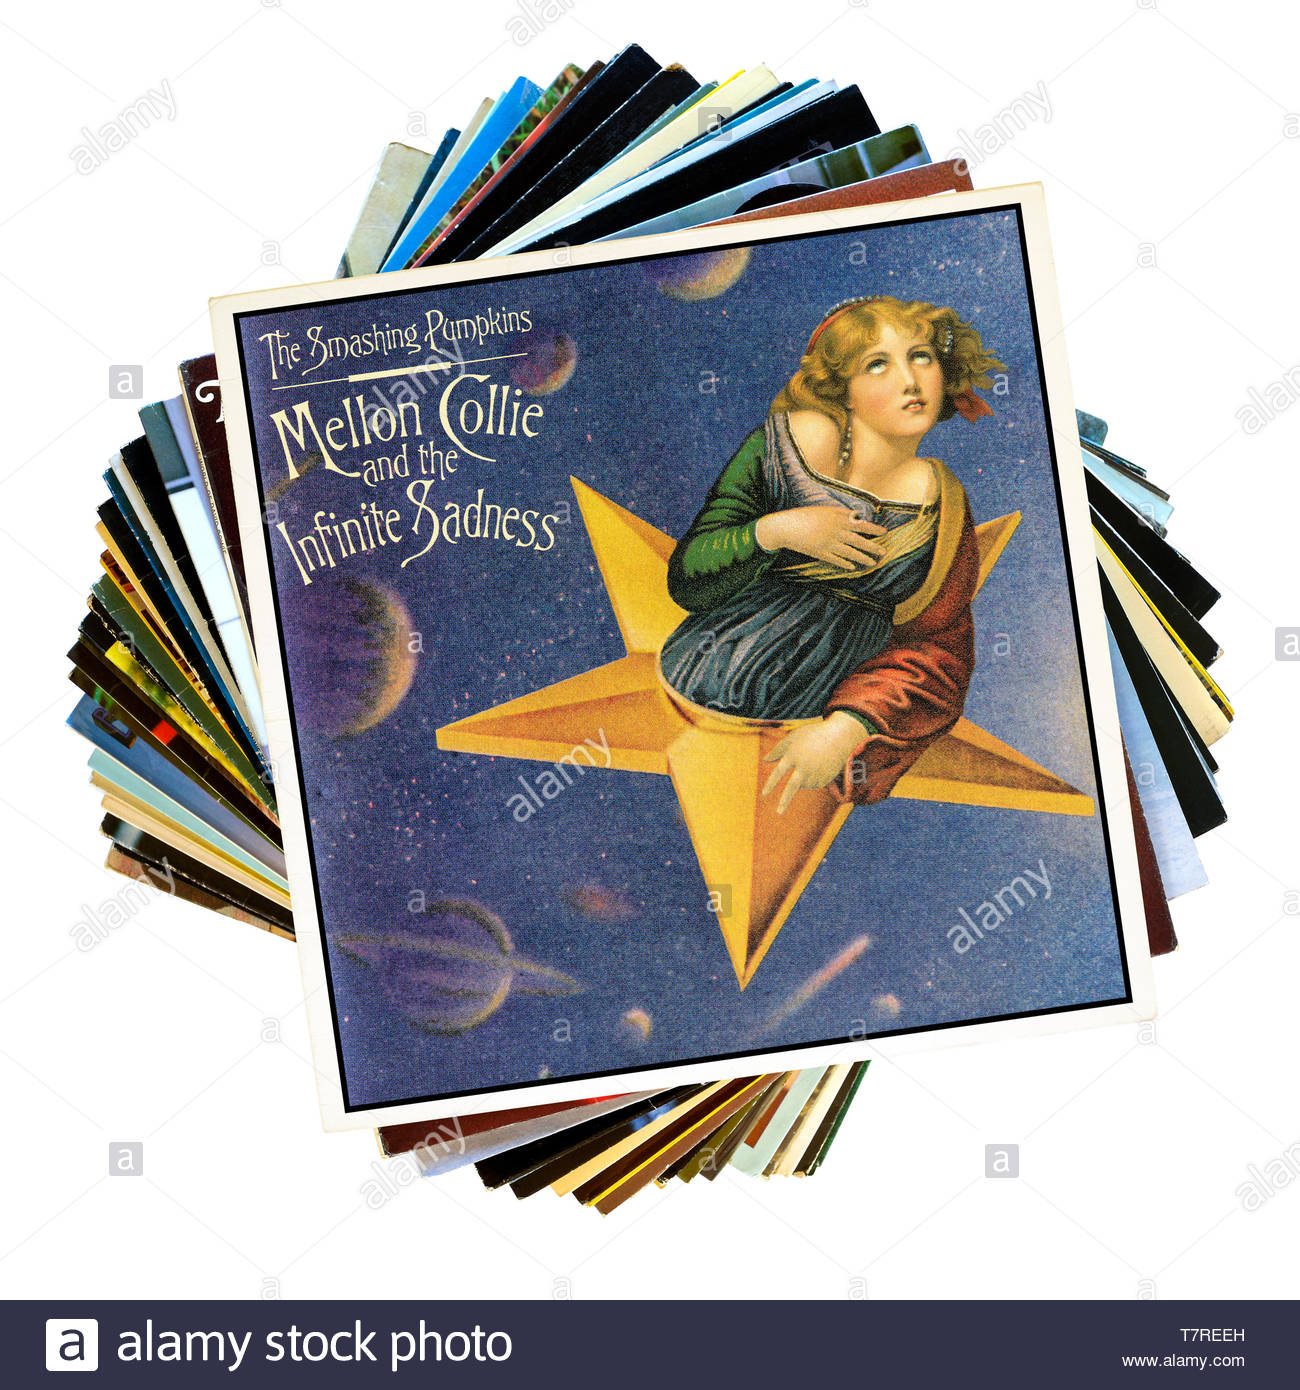 The Smashing Pumpkins, Mellon Collie and the Infinite Sadness stack of LP records, England - Stock Image